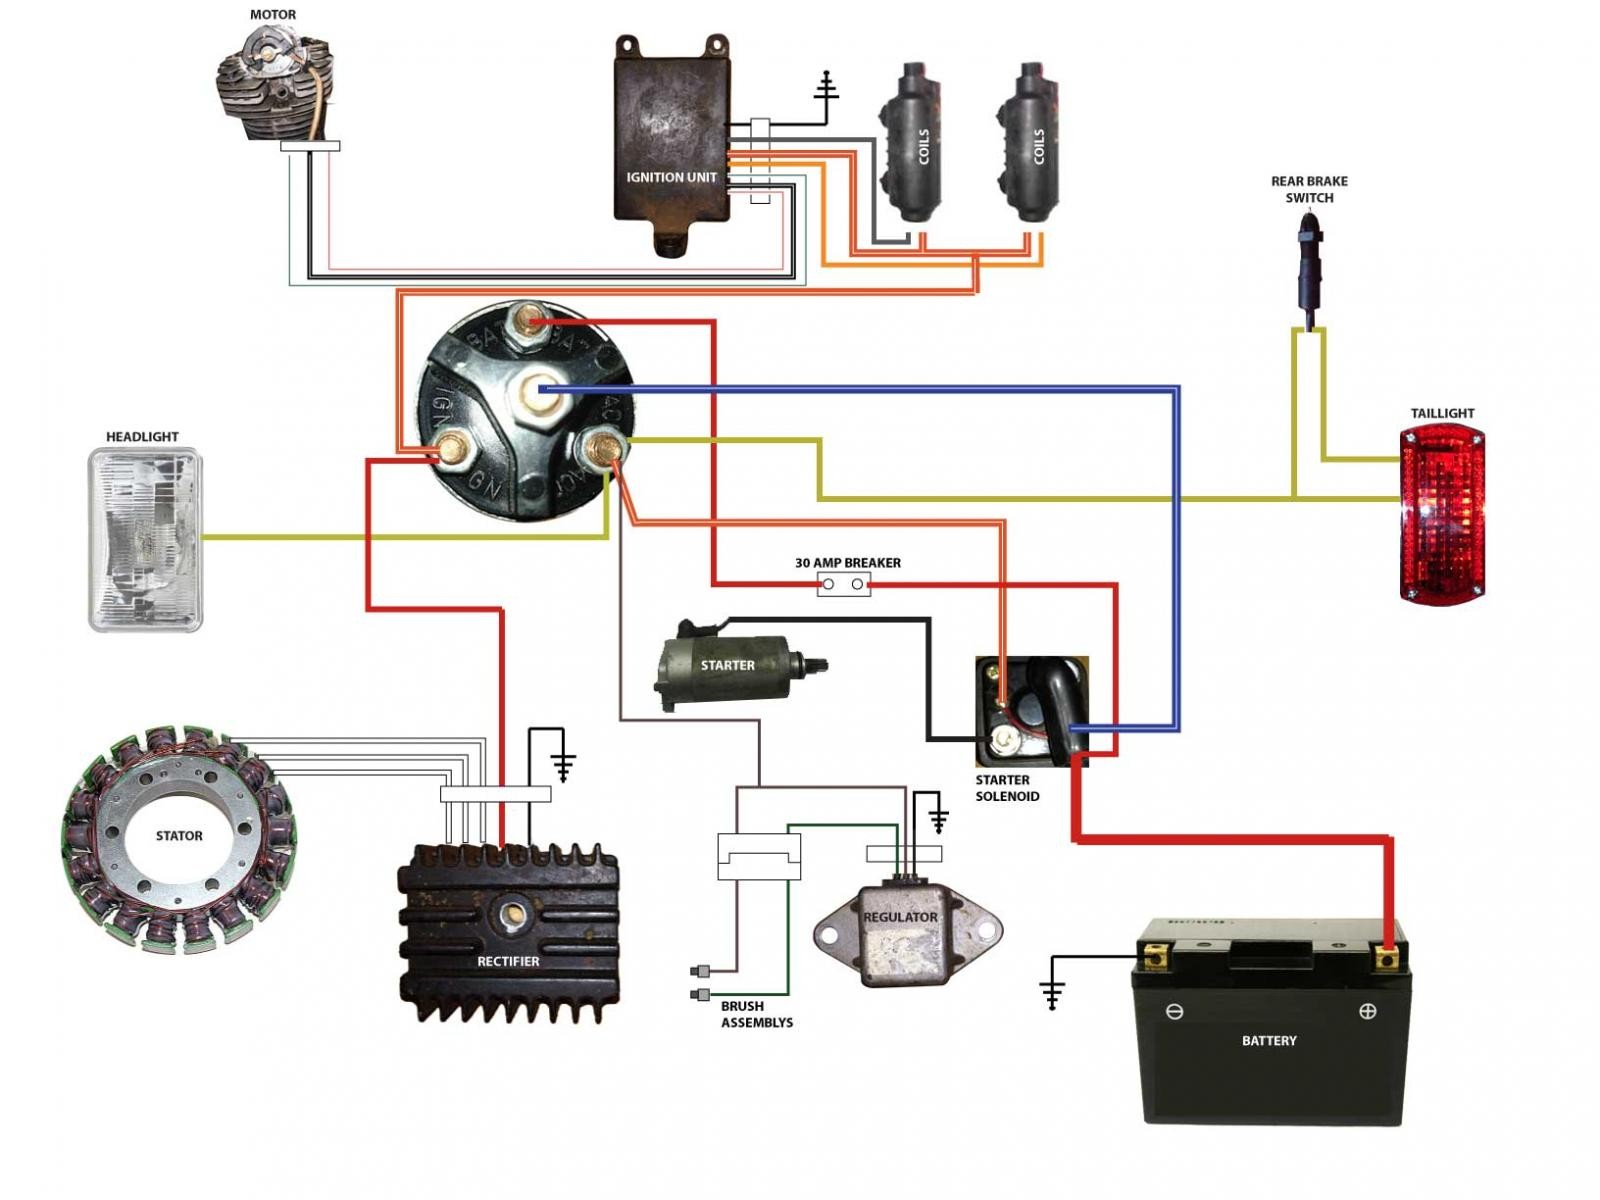 Honda Cb Bobber Wiring Harness Circuit And Diagram Hub 79 Cb750 Wire Data Schema Chopper Schematics Conversion Frames